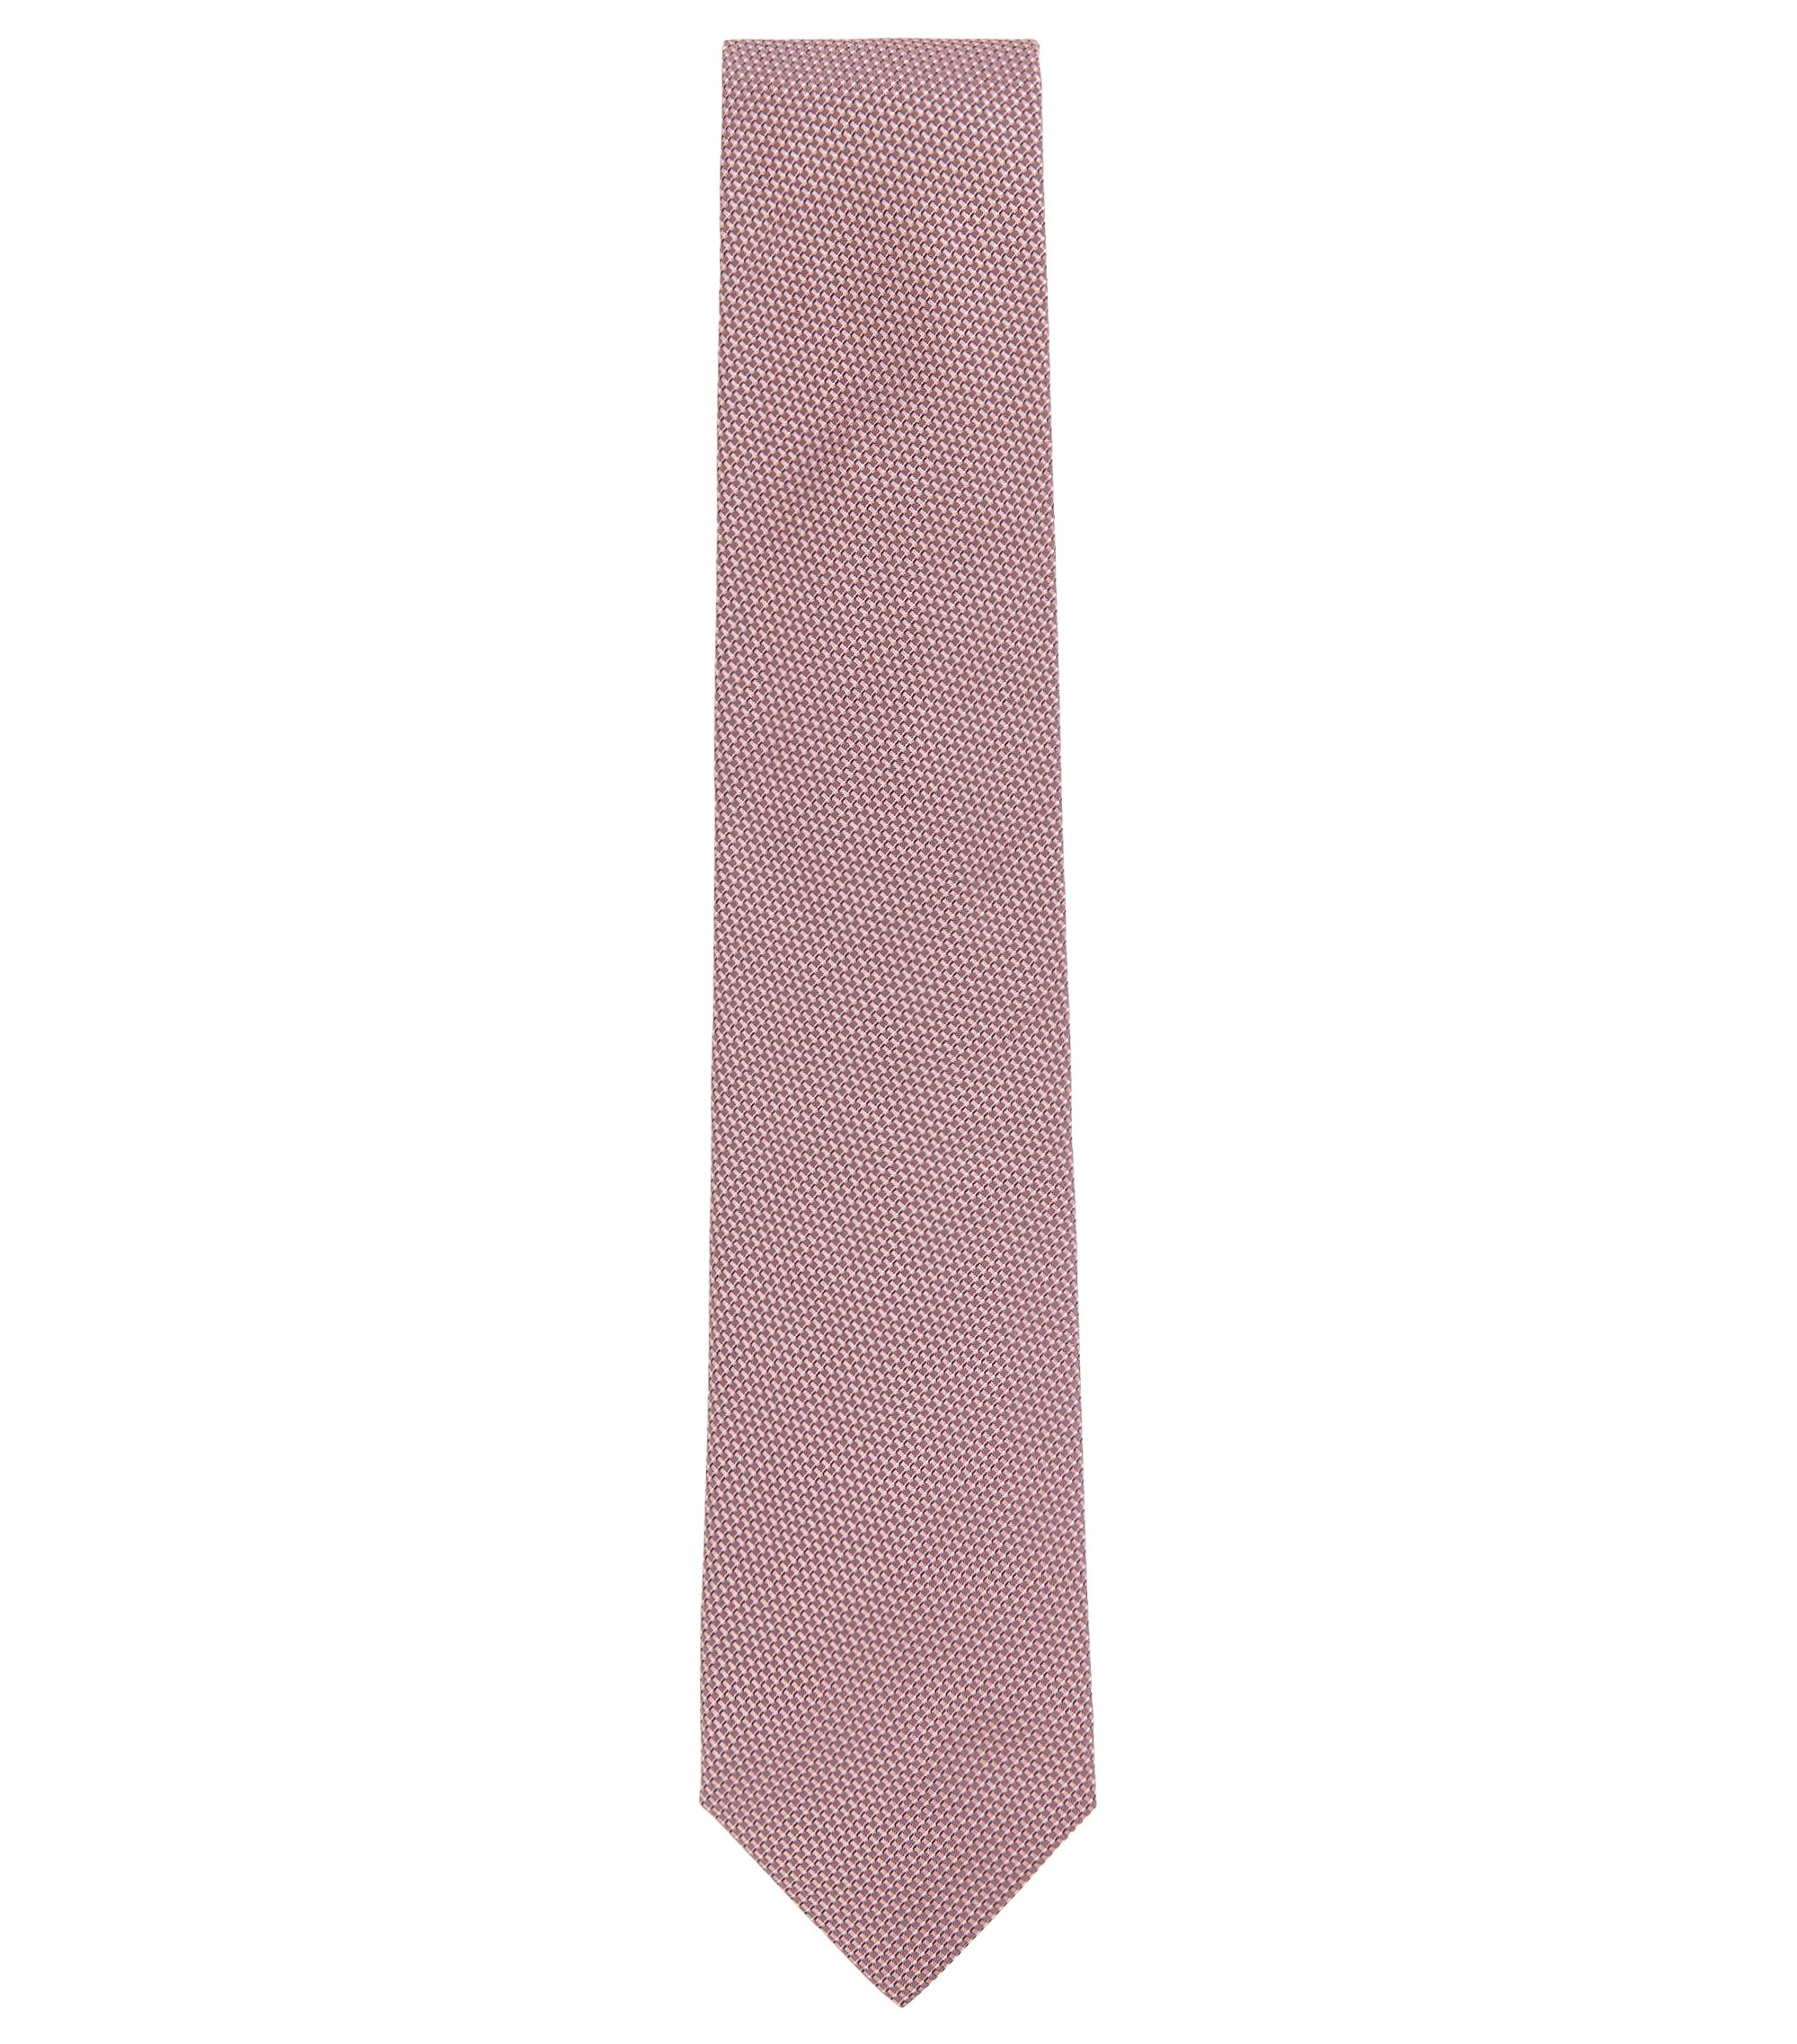 Italian-made tie in micro-pattern silk jacquard, light pink